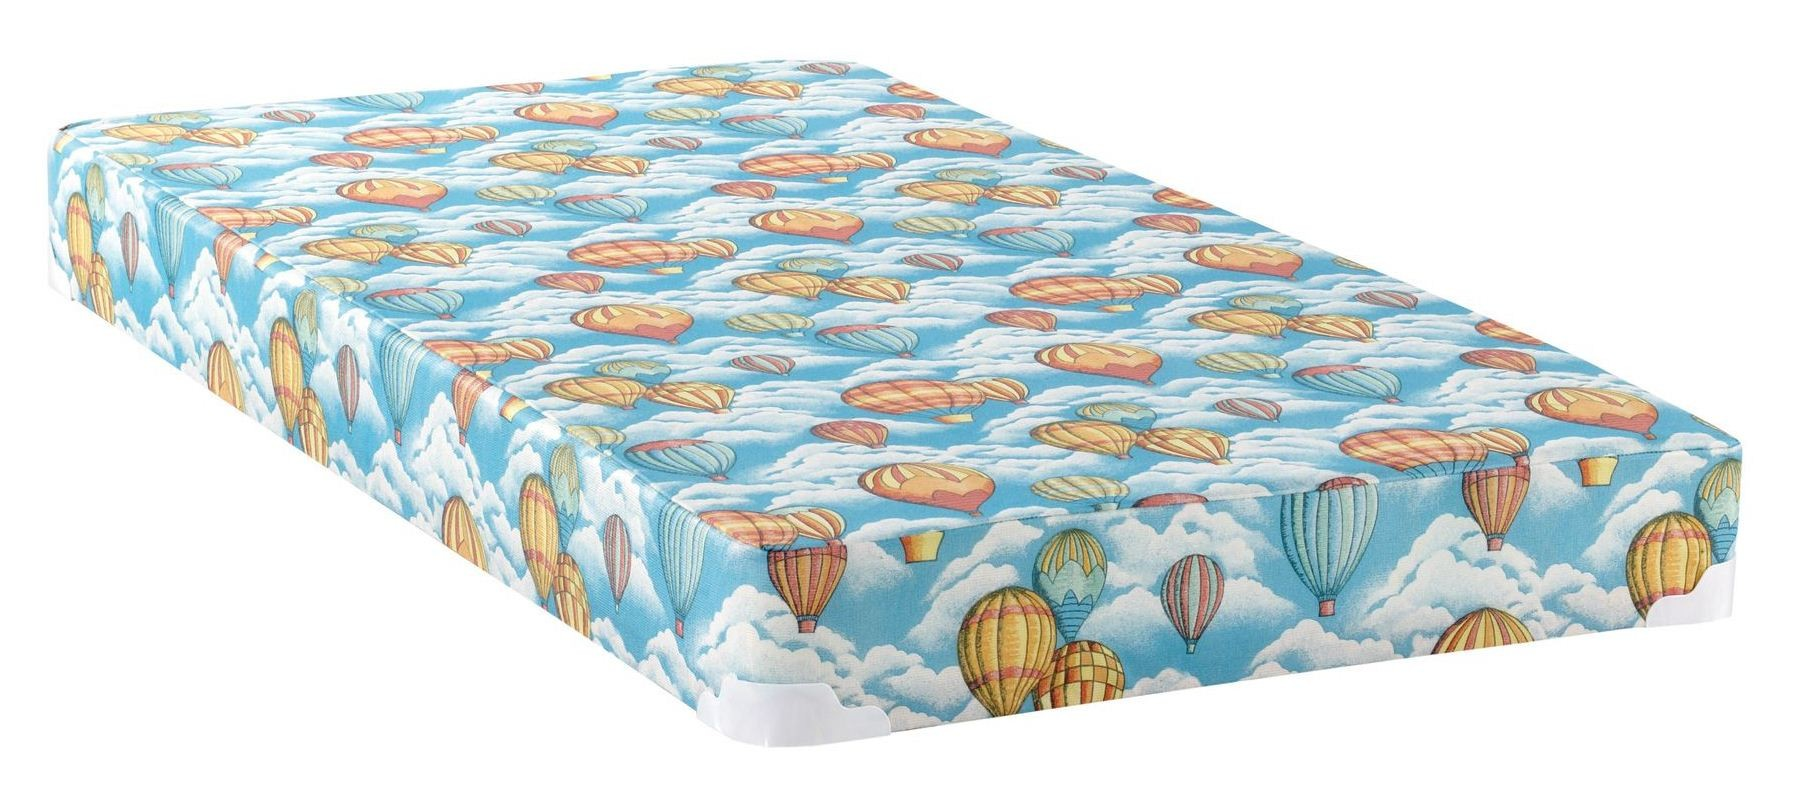 Best Twin Mattress For Bunk Bed Triple Bunk Beds With Mattresses Included Wonderfull Bunk Bed